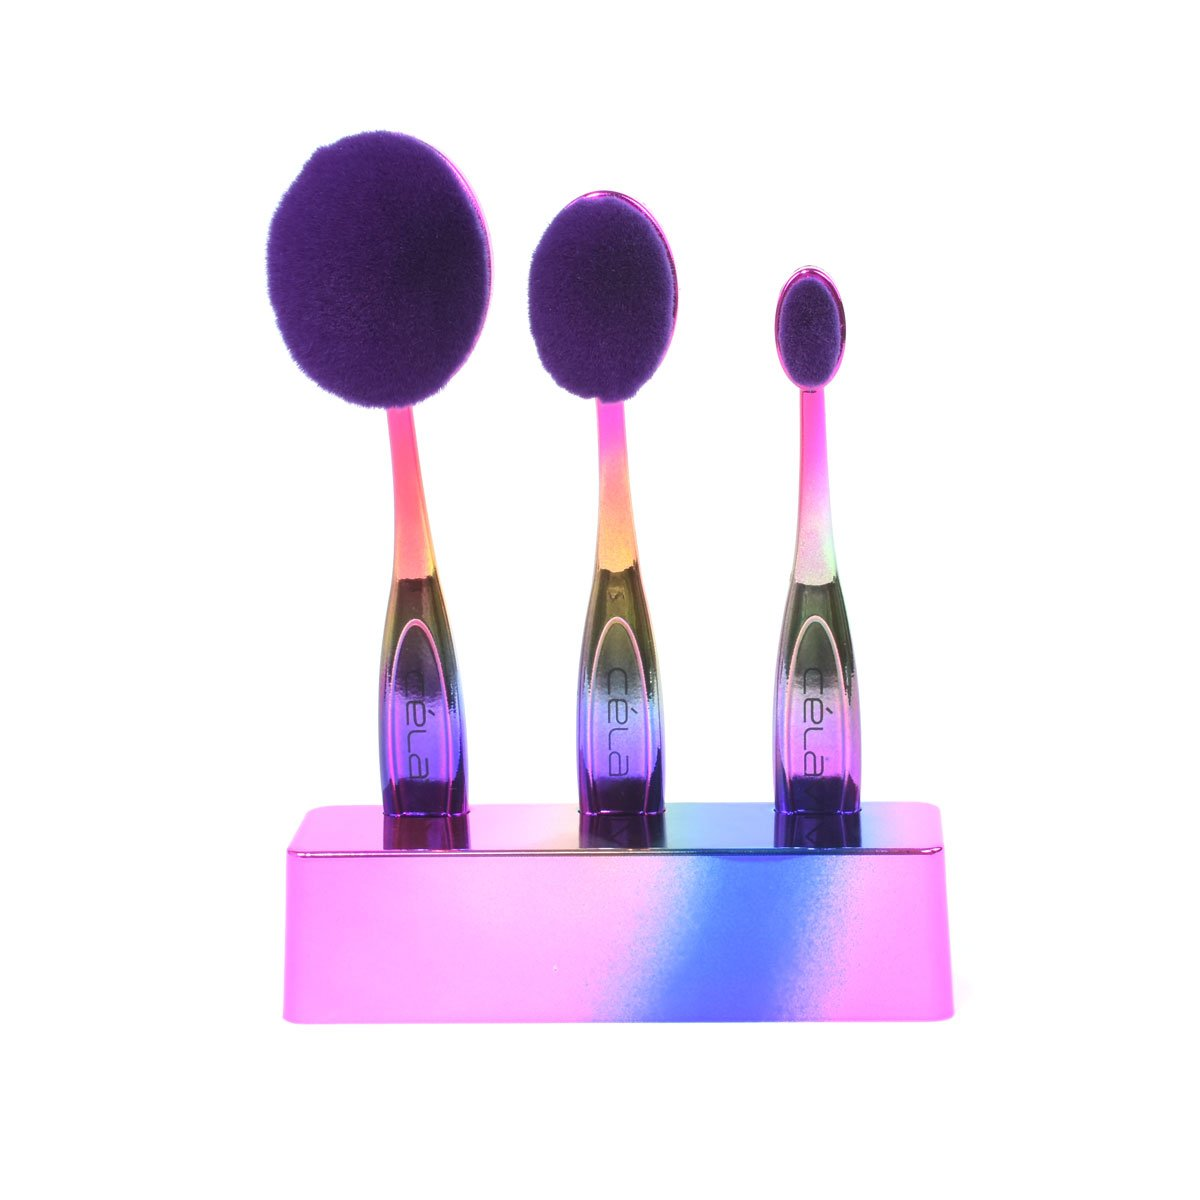 Celavi Oval Makeup Brush Professional Cosmetic Tools for Face, Foundation, Creams, Liquids, Moisturizer, Powder, Blush, Concealer, Contour-Beauty-Celavi Cosmetics-3 Brush Set-Rainbow-Celavi Cosmetics